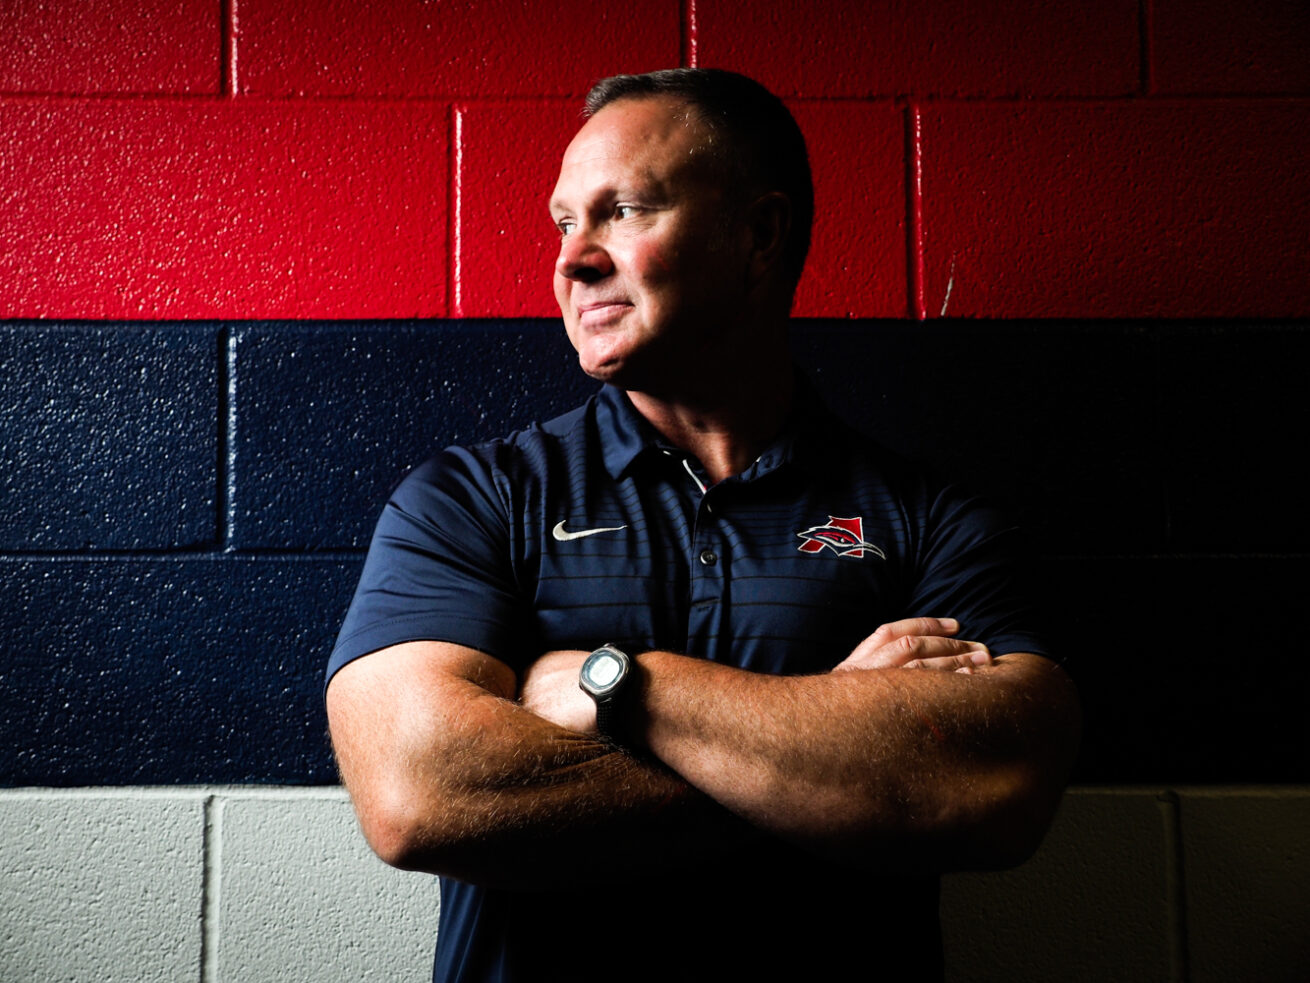 Aubrey football head coach Keith Ivy nearly died 10 years ago after a battle with Guillen-Barre, a rare auto-immune disease.   Guillen-Barre left Ivy temporarily paralyzed and hospitalized for nearly three months.